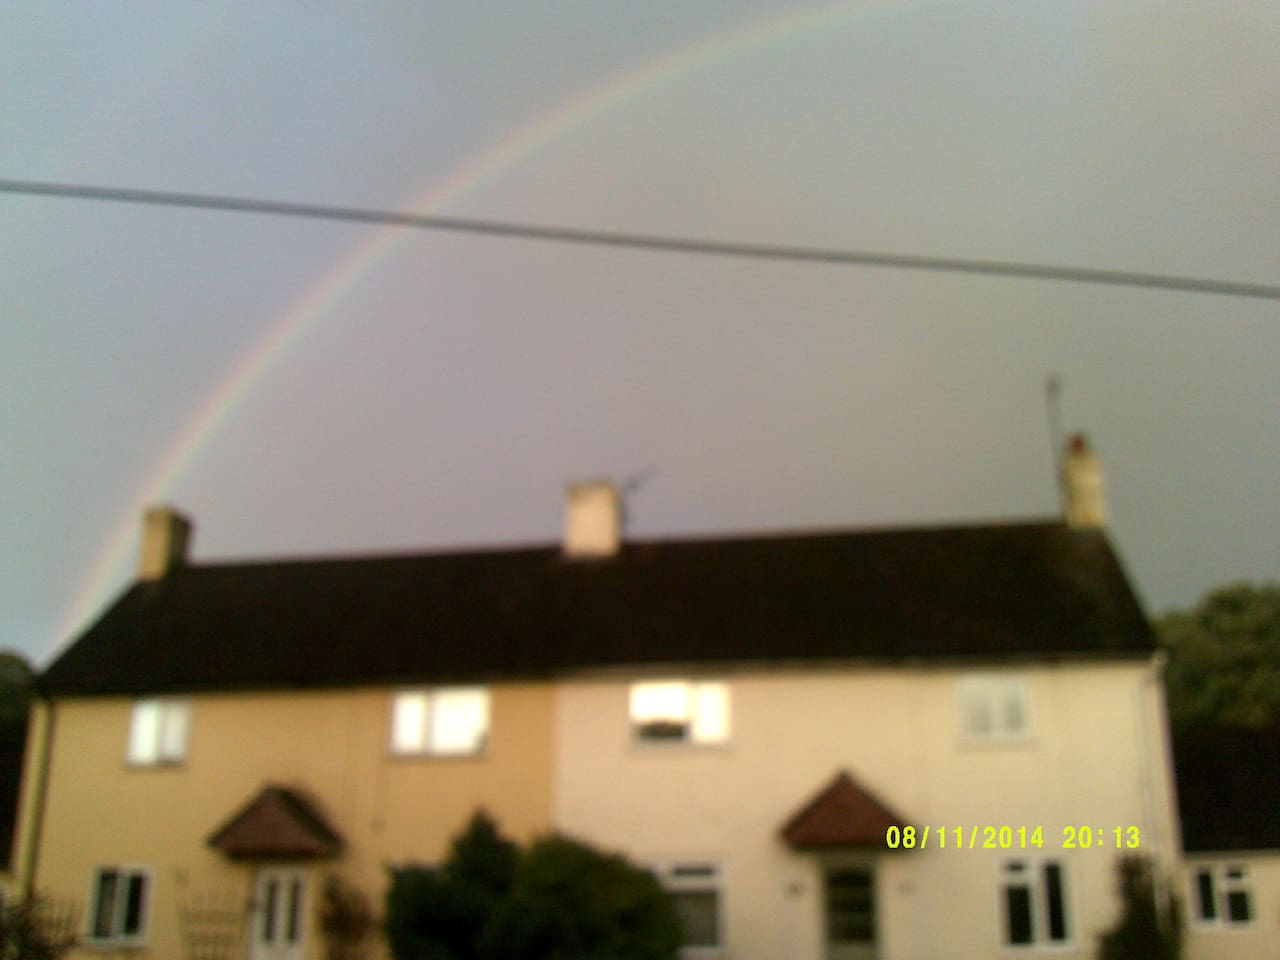 Rainbow over the hose on a summers evening after a storm